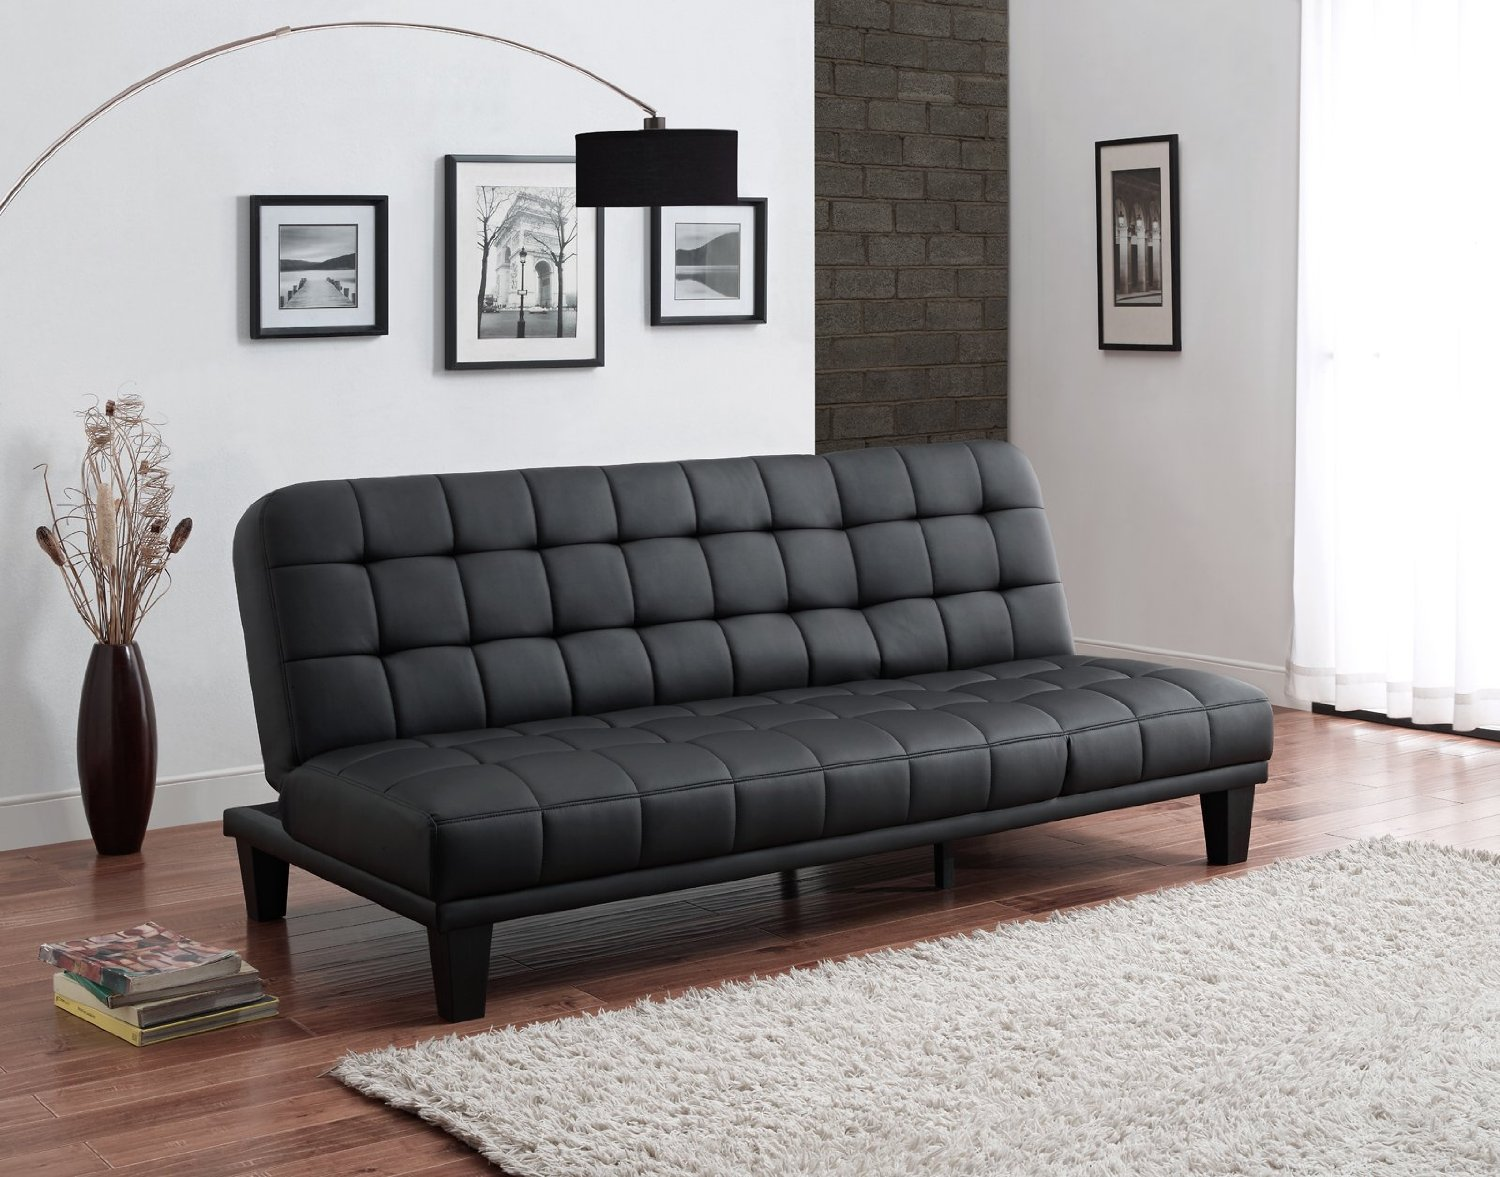 Metropolitan Futon Lounger Review